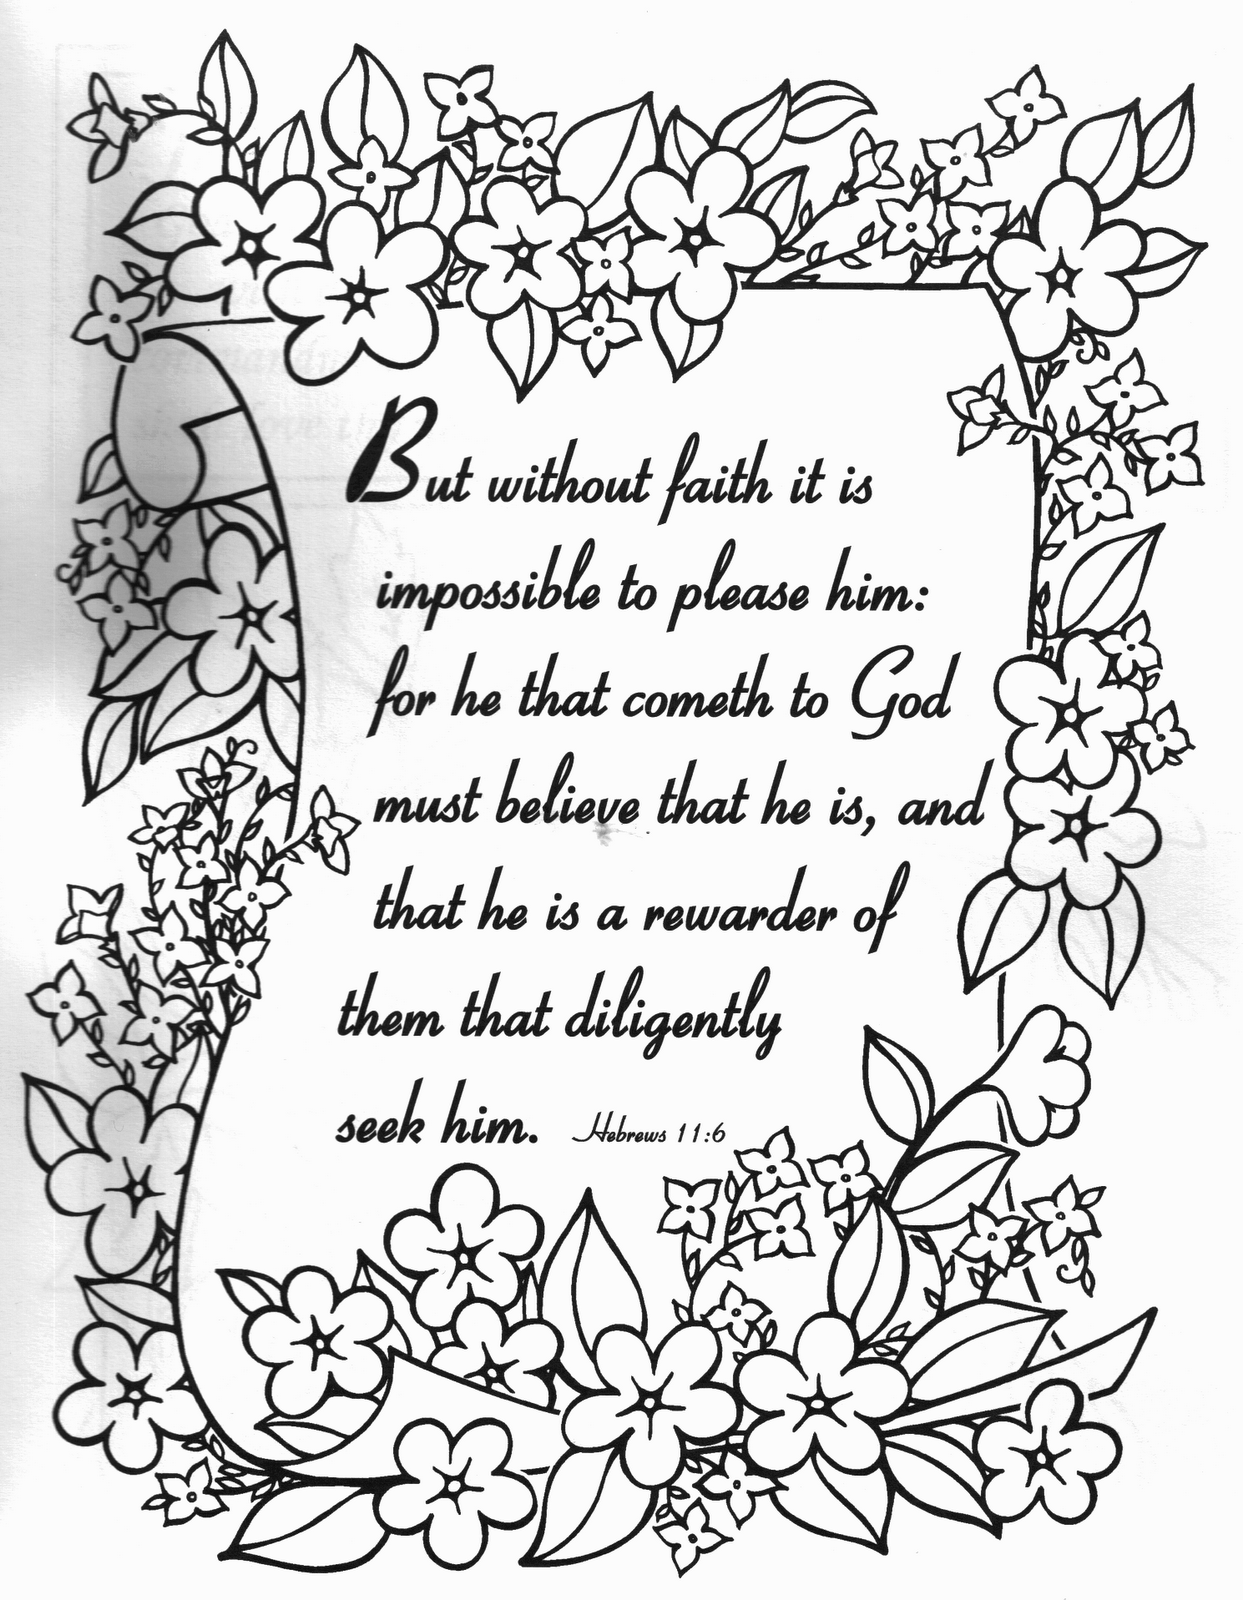 coloring pages with bible verses 5 bible verse coloring pages inspiration quotes diy christian coloring pages bible verses with